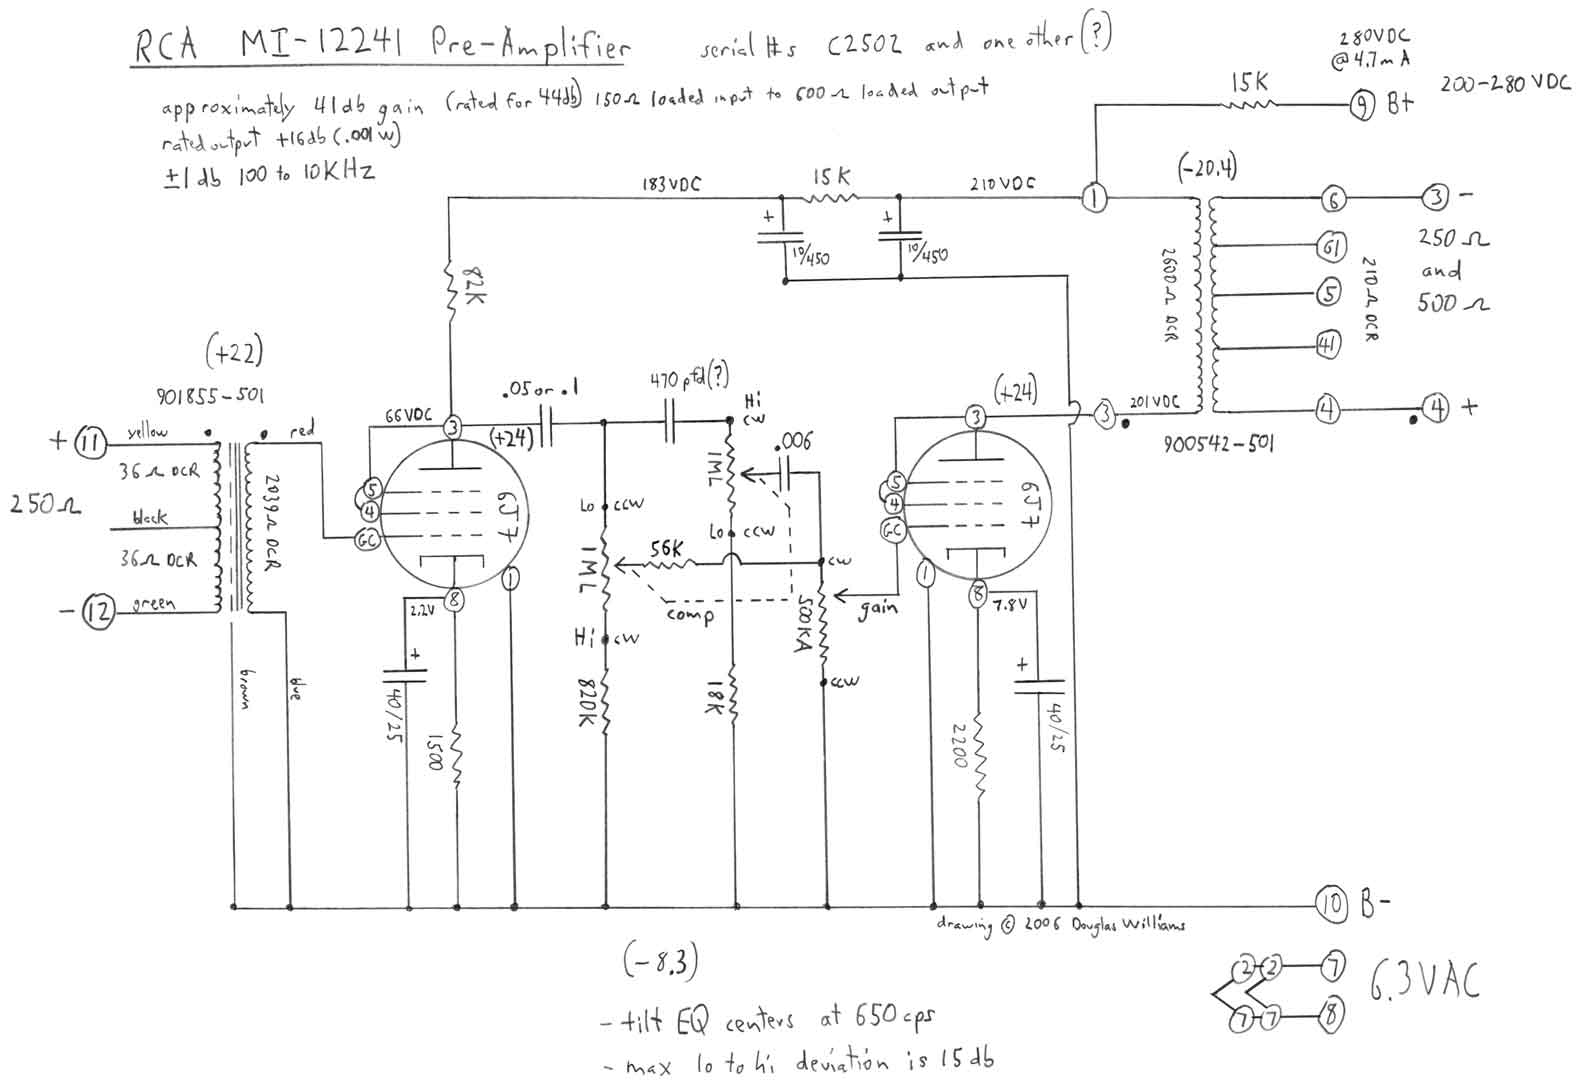 Tilt Equalizer Pro Audio Design Forum Based On The Classic Baxendall Tone Control Circuit This Provides A I Measured Closer To 800hz Restored Unit Thats Abbreviated Comp Panel So People Are Always Trying Sell Them As Tube Compressors